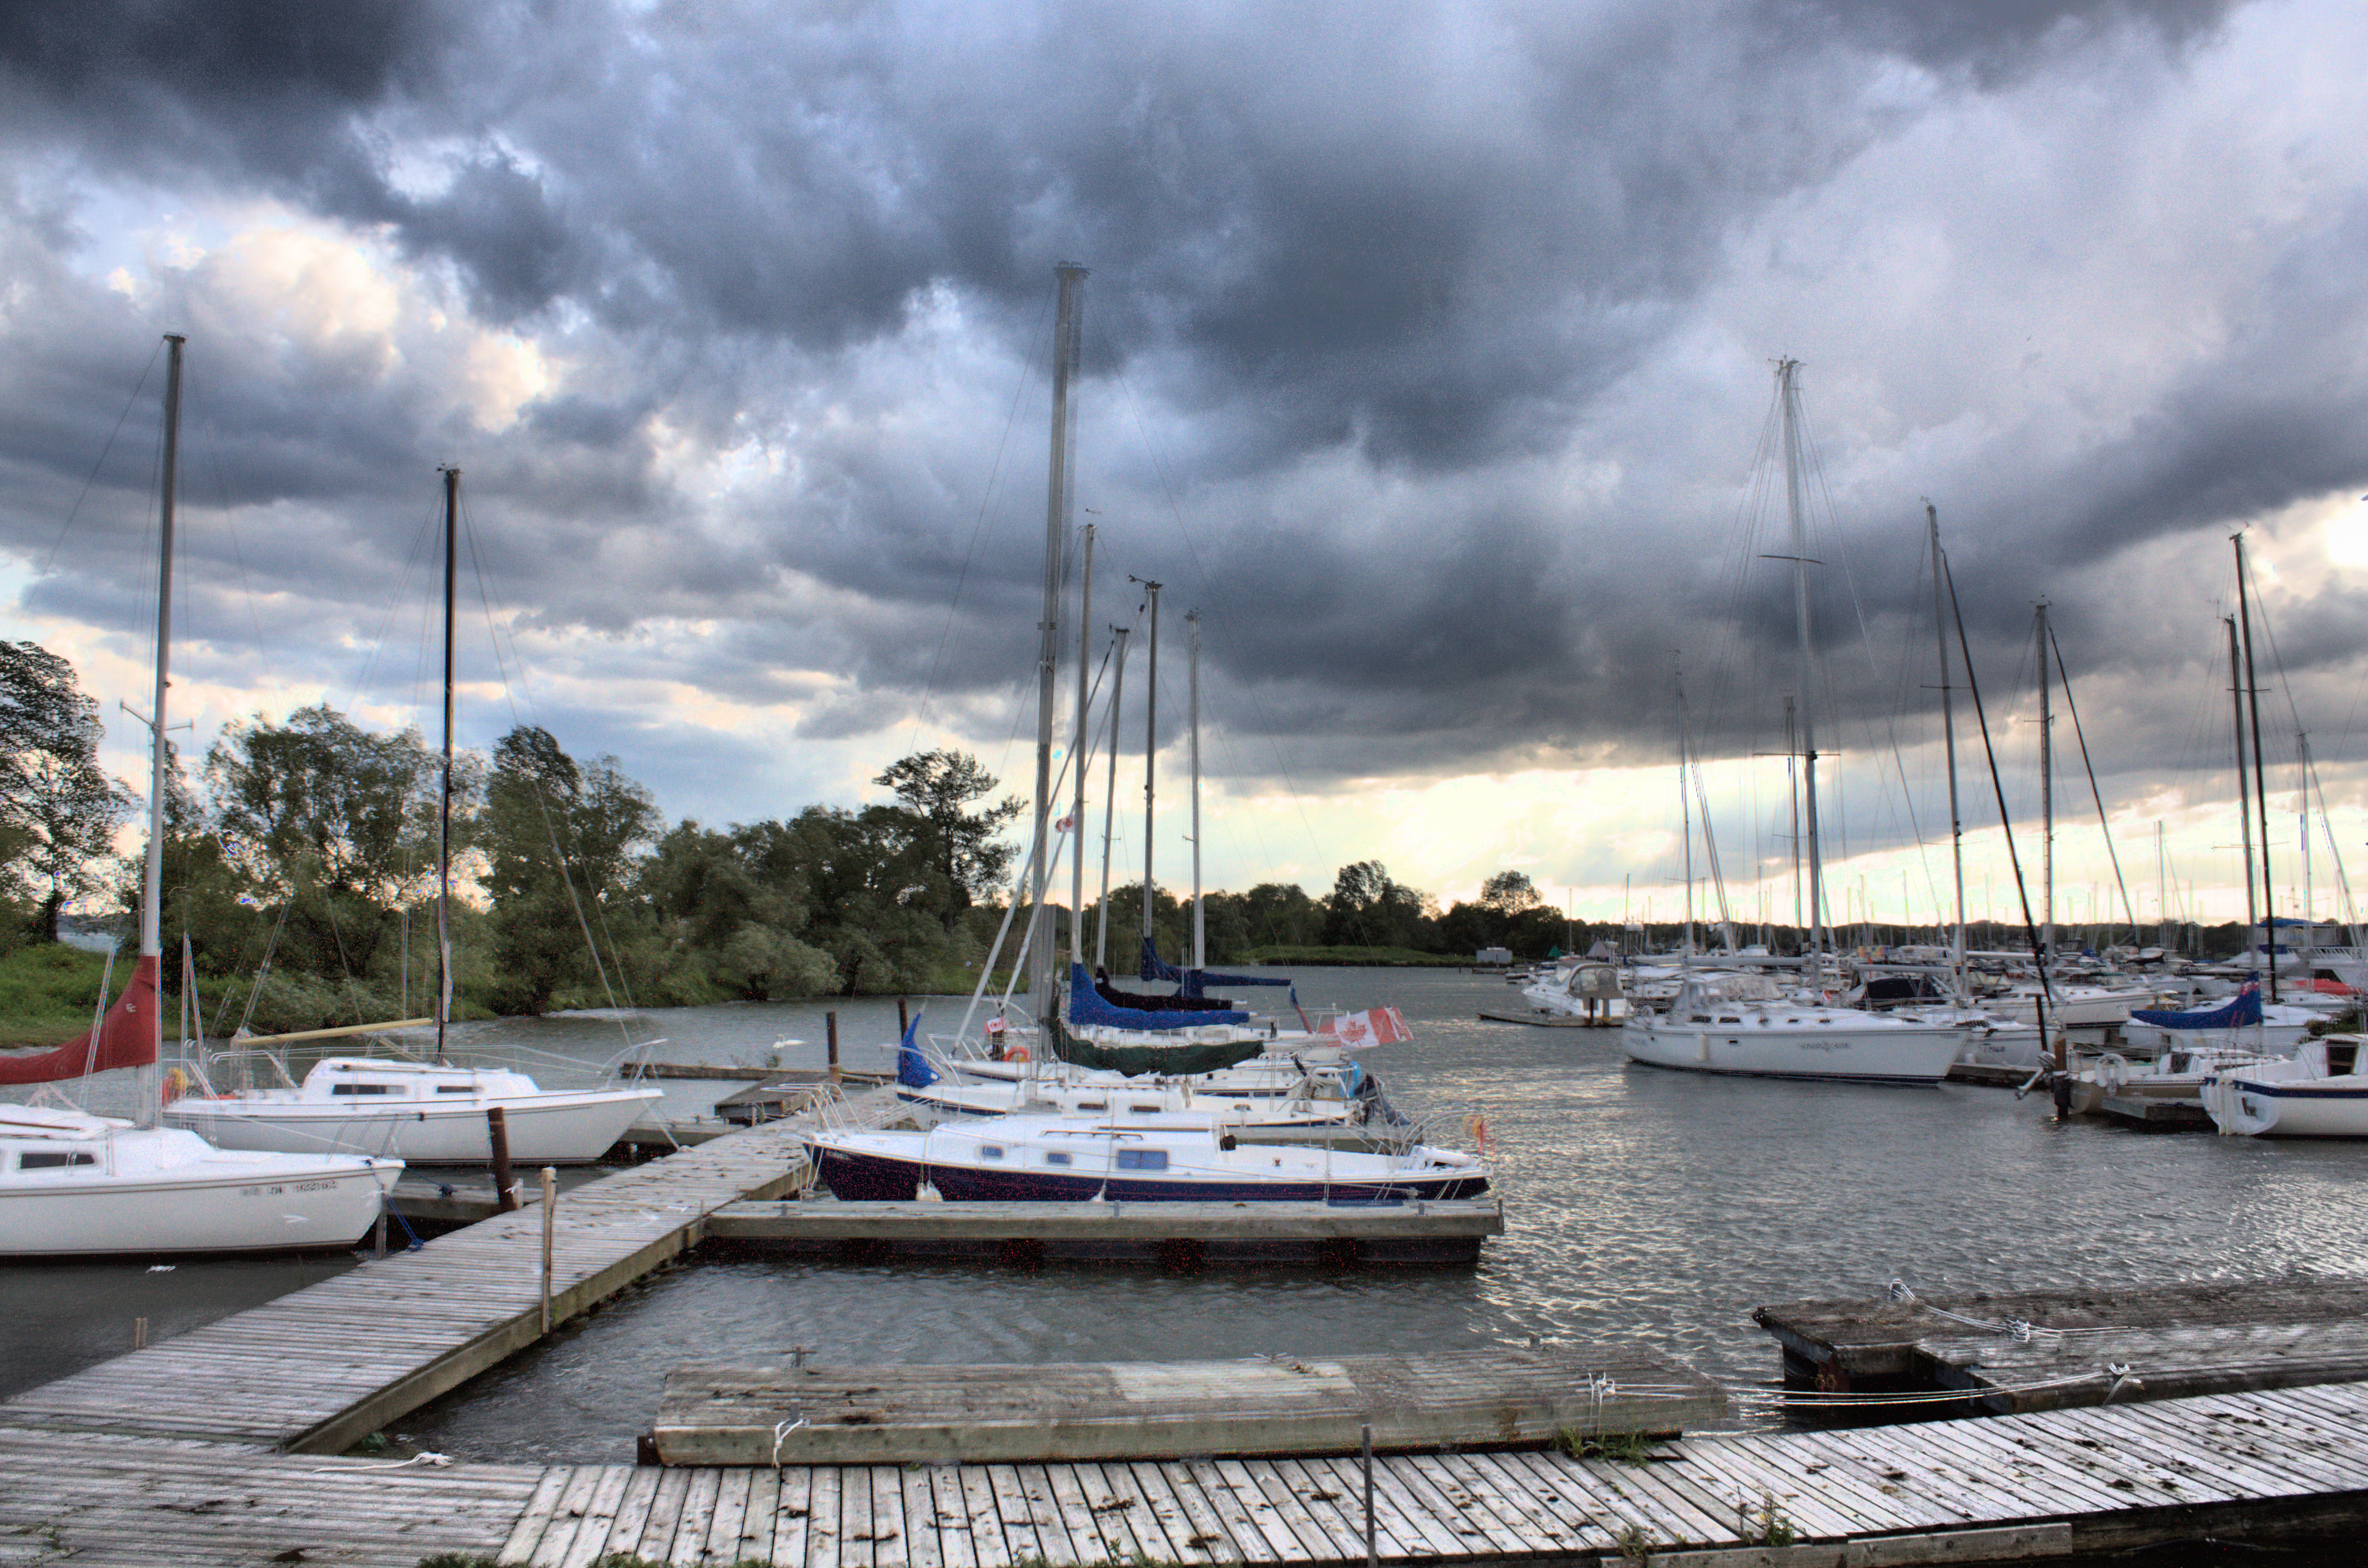 Frenchmans Bay, Bay, Boats, Clouds, Harbor, HQ Photo